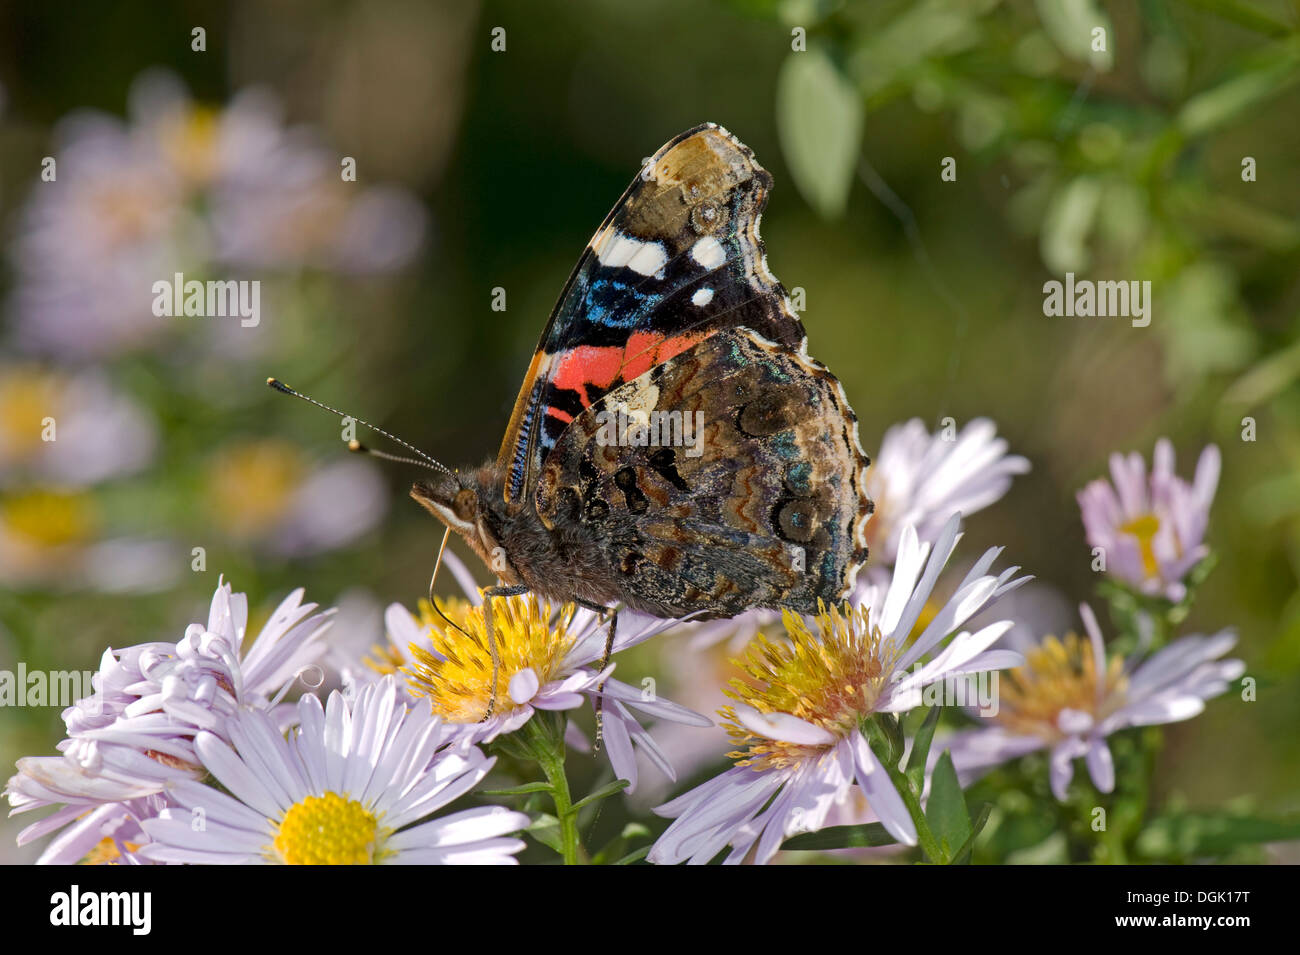 Red admiral butterfly, Vanessa atalanta, on a michaelmas daisy, Aster spp., flower in autumn - Stock Image